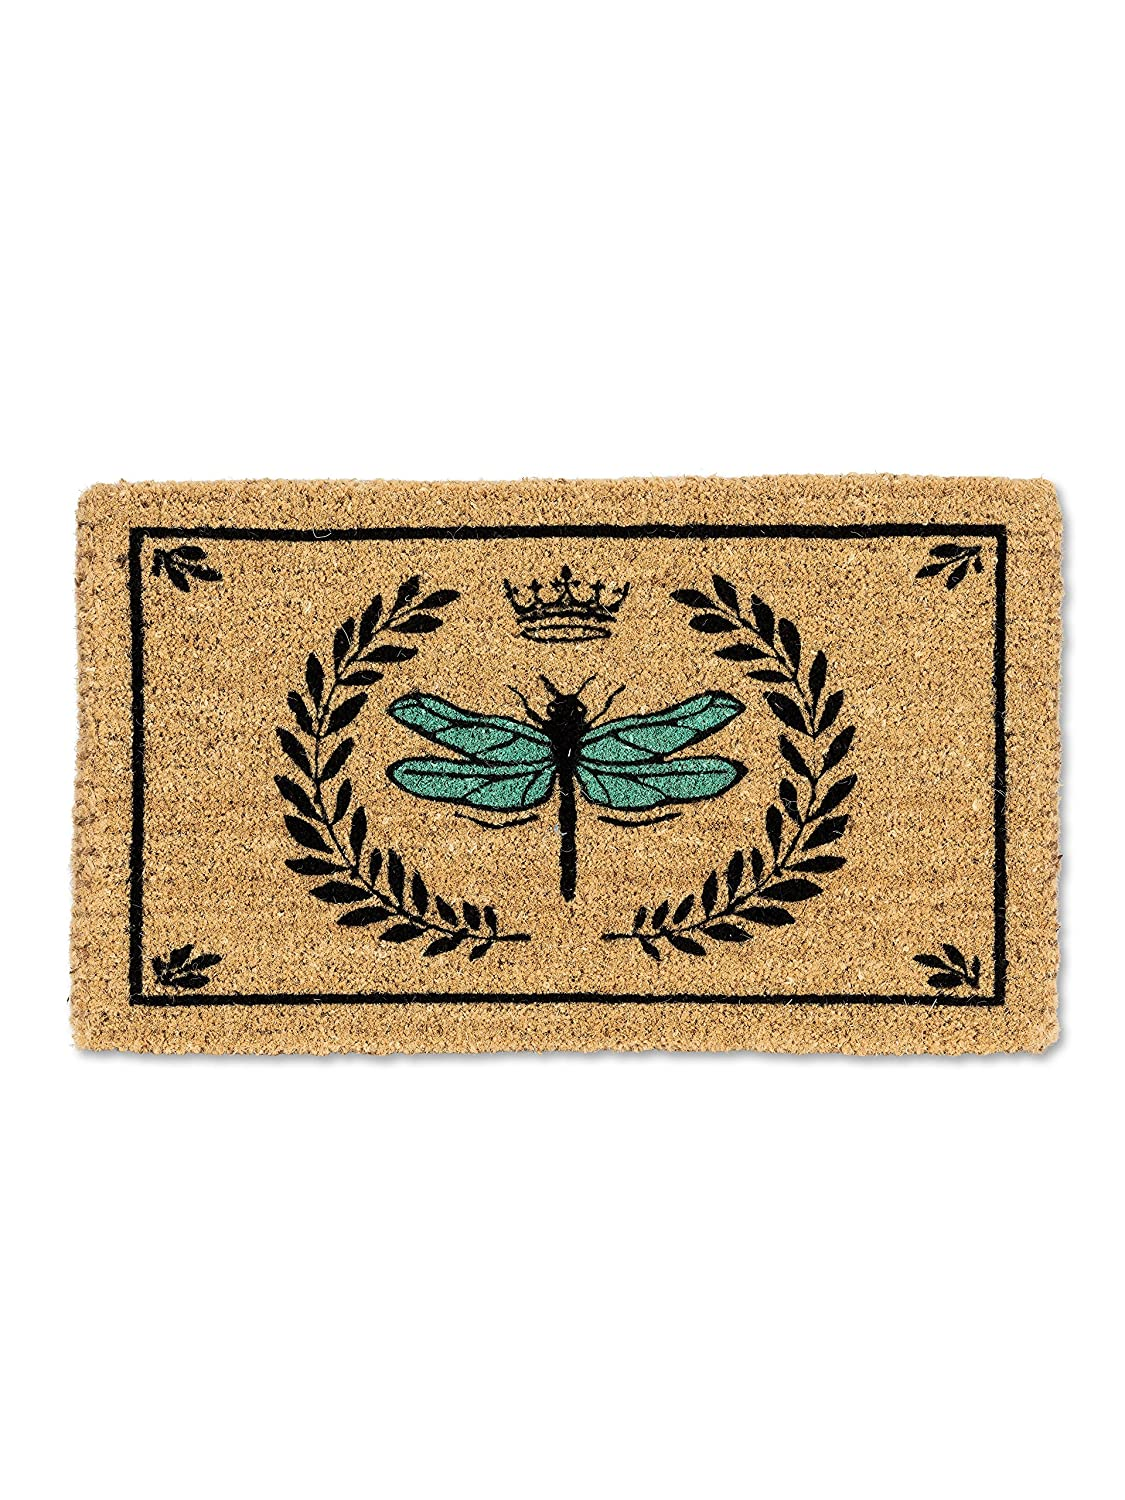 Abbott Collection 35-FWD//GE 7907 Dragonfly in Crest Doormat-18X30 L